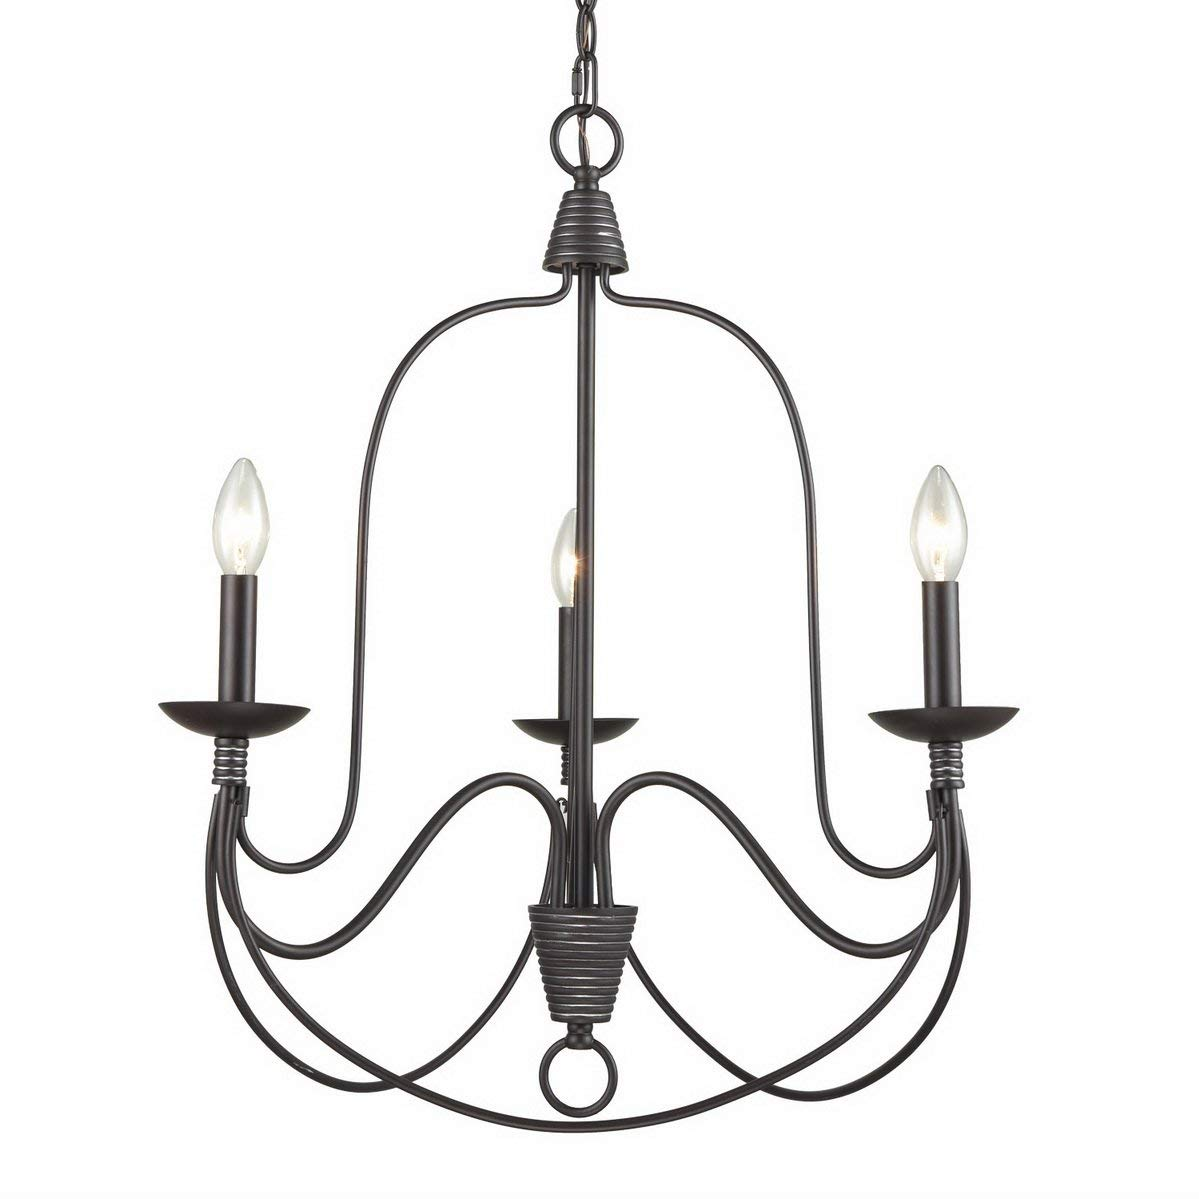 1199x1199 Chandeliers Drawing Vintage Candle For Free Download